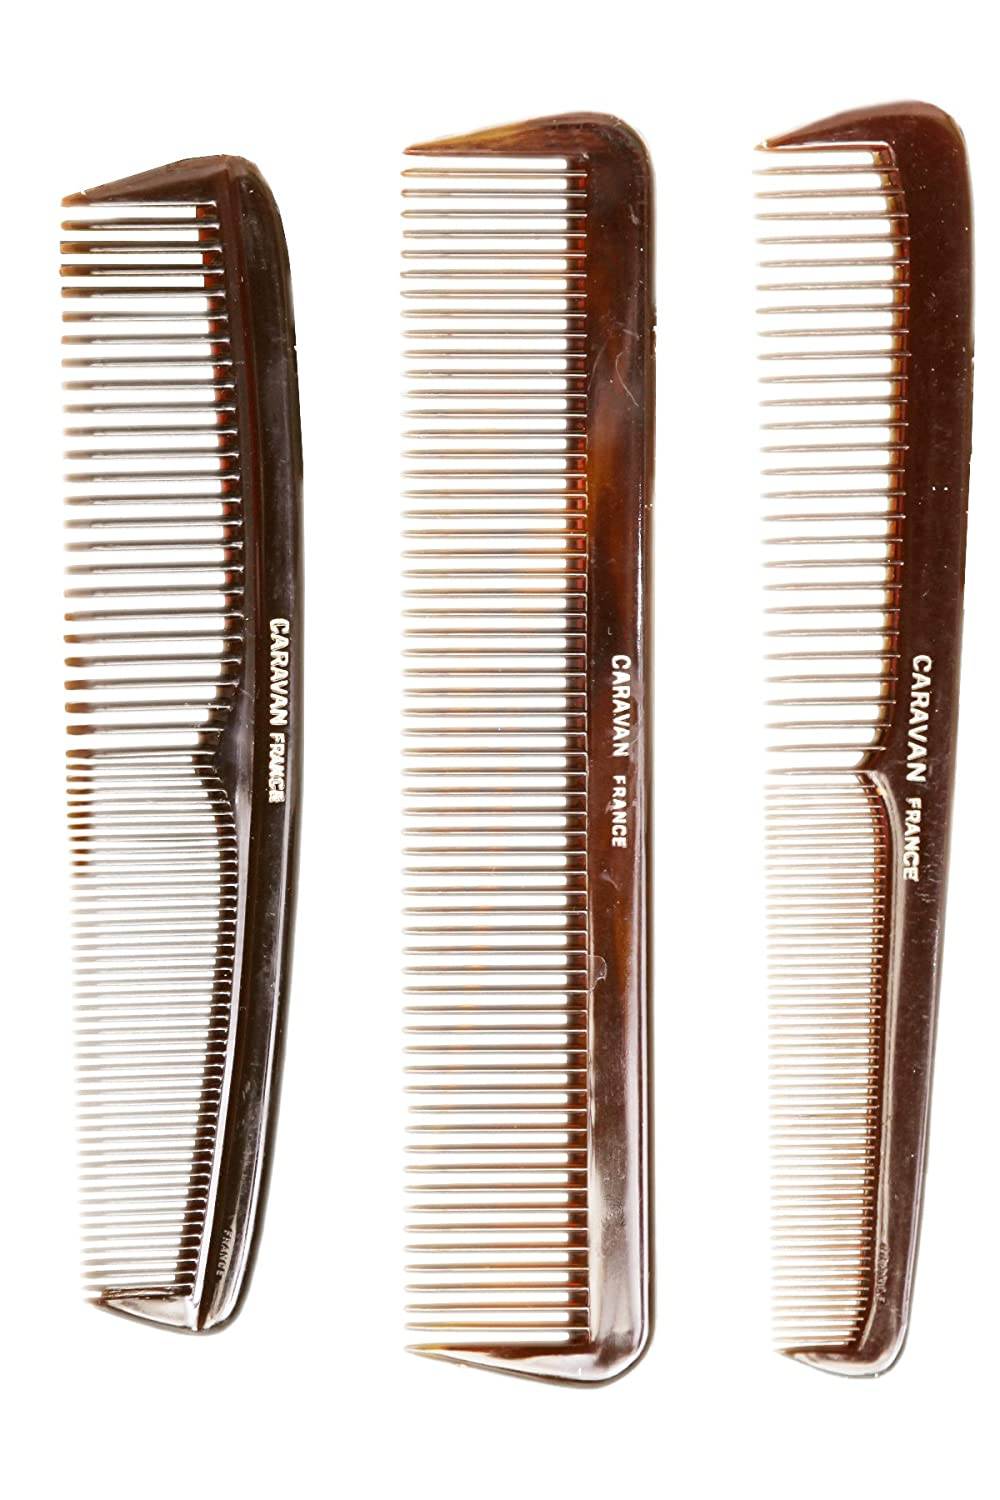 Caravan Tortoise Set of 3 Shell Comb, French Full 49111